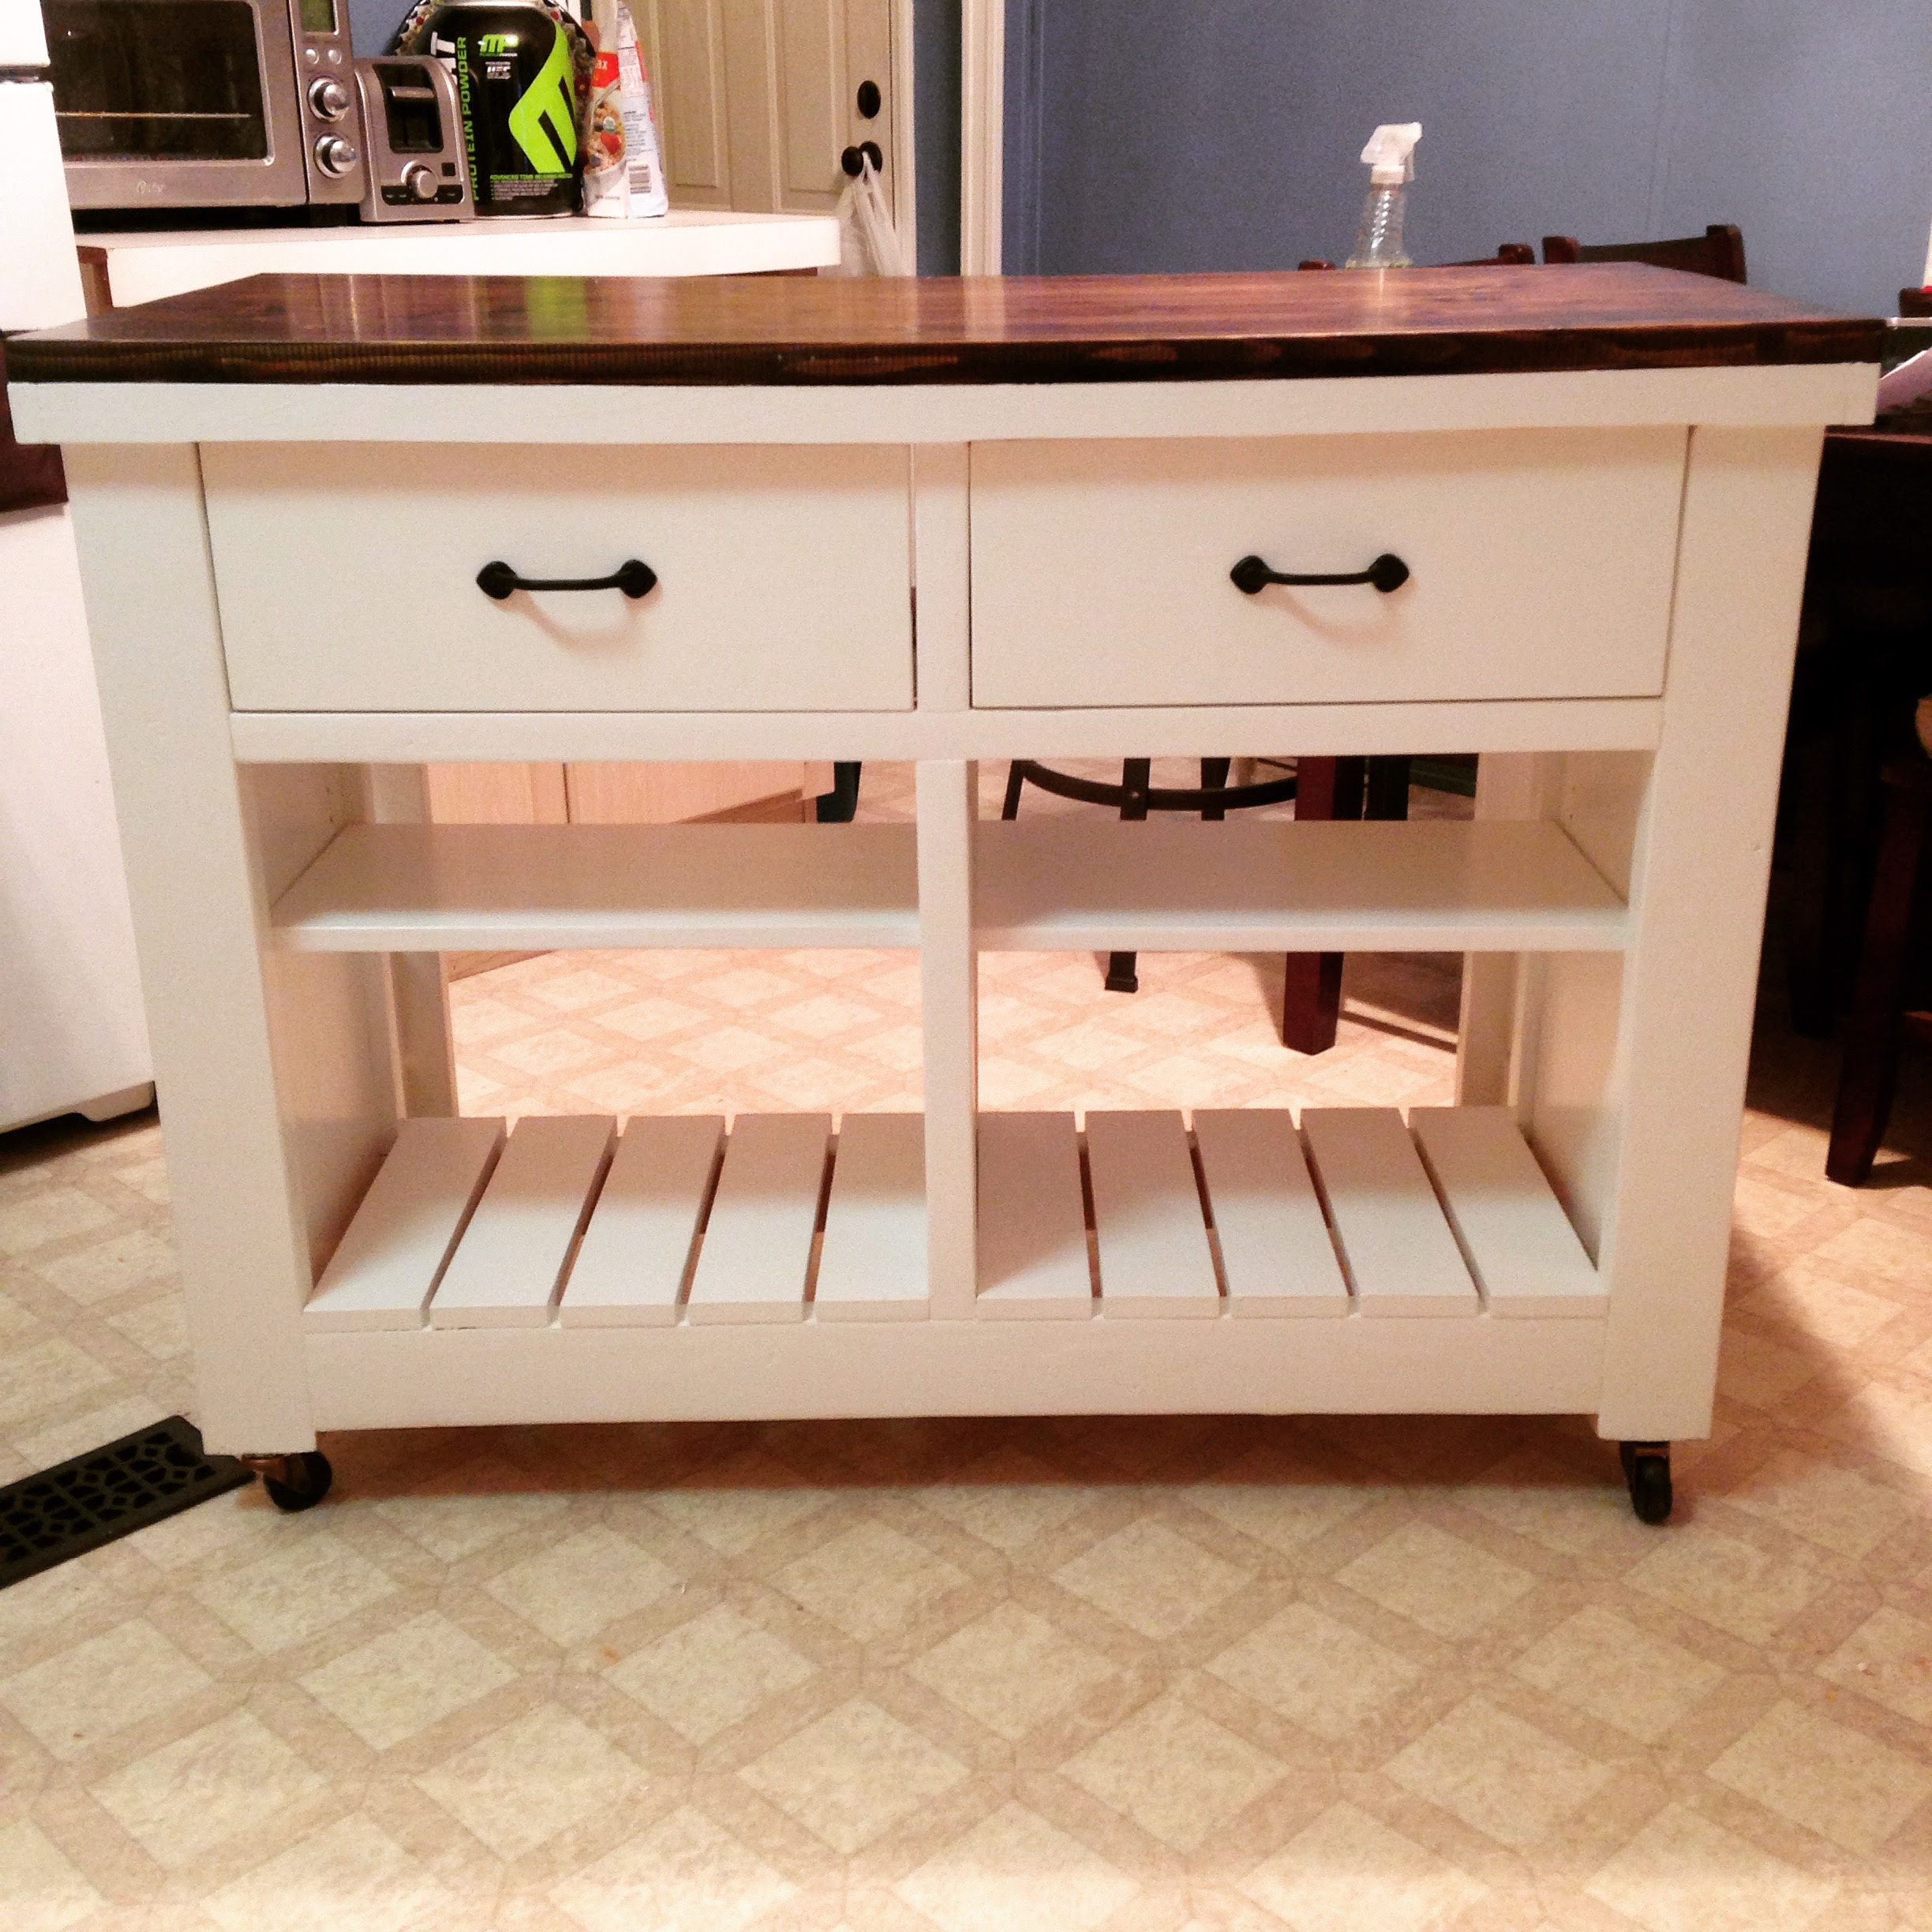 Ana White   Rustic Kitchen Island DIY - DIY Projects